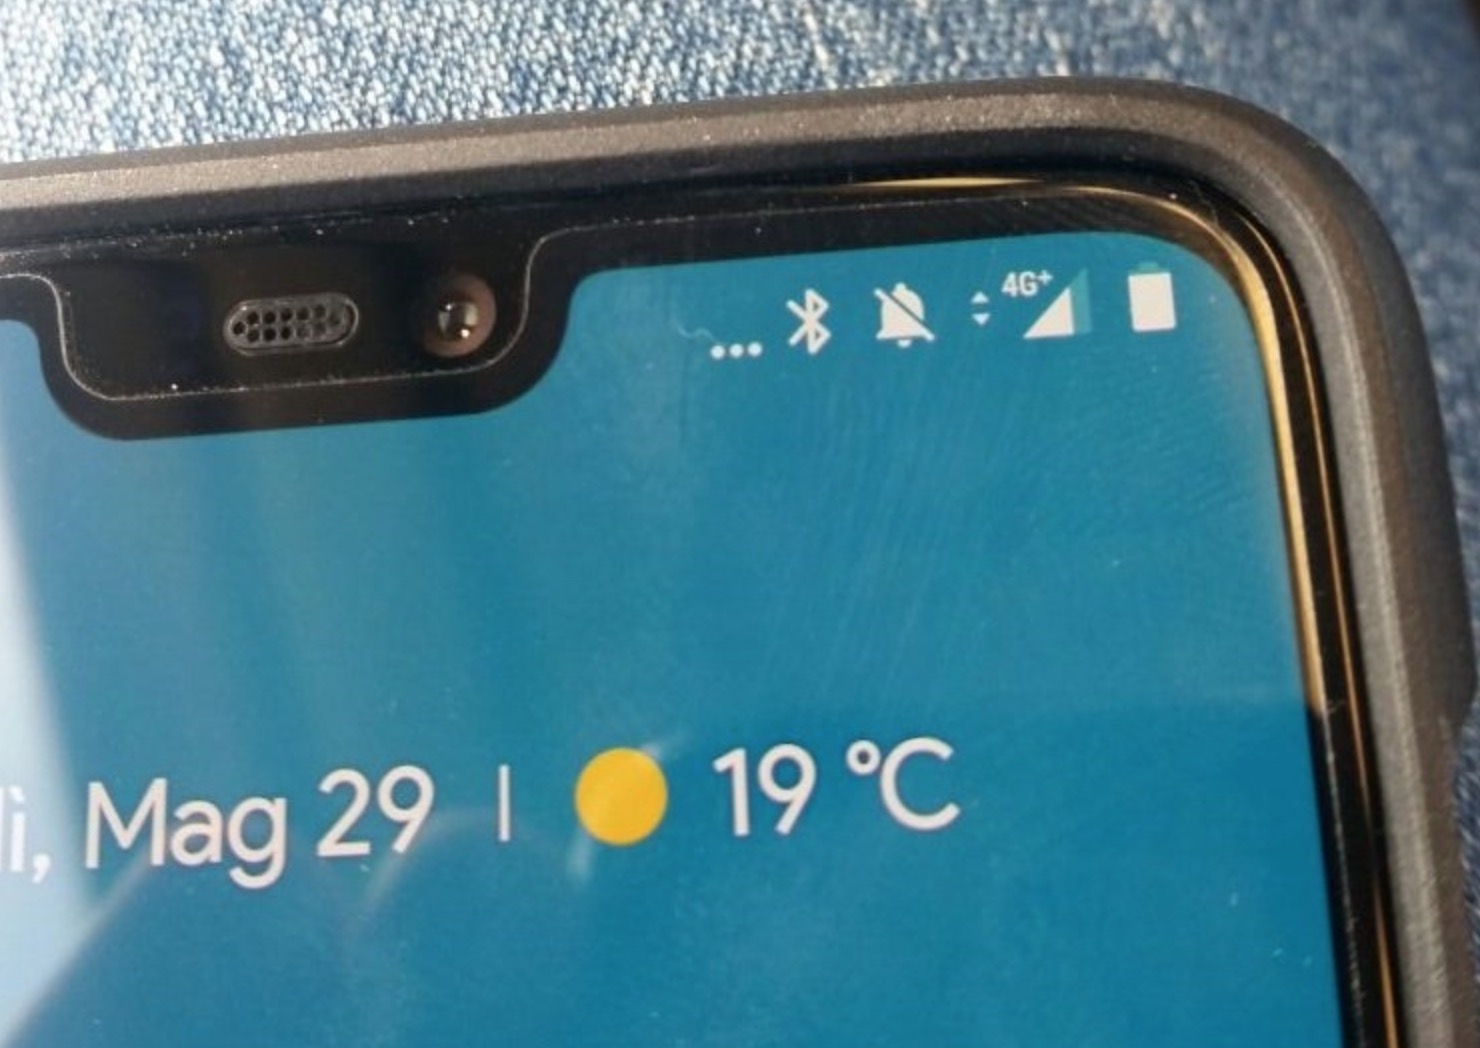 OnePlus 6 Notification Bar Icons Explained